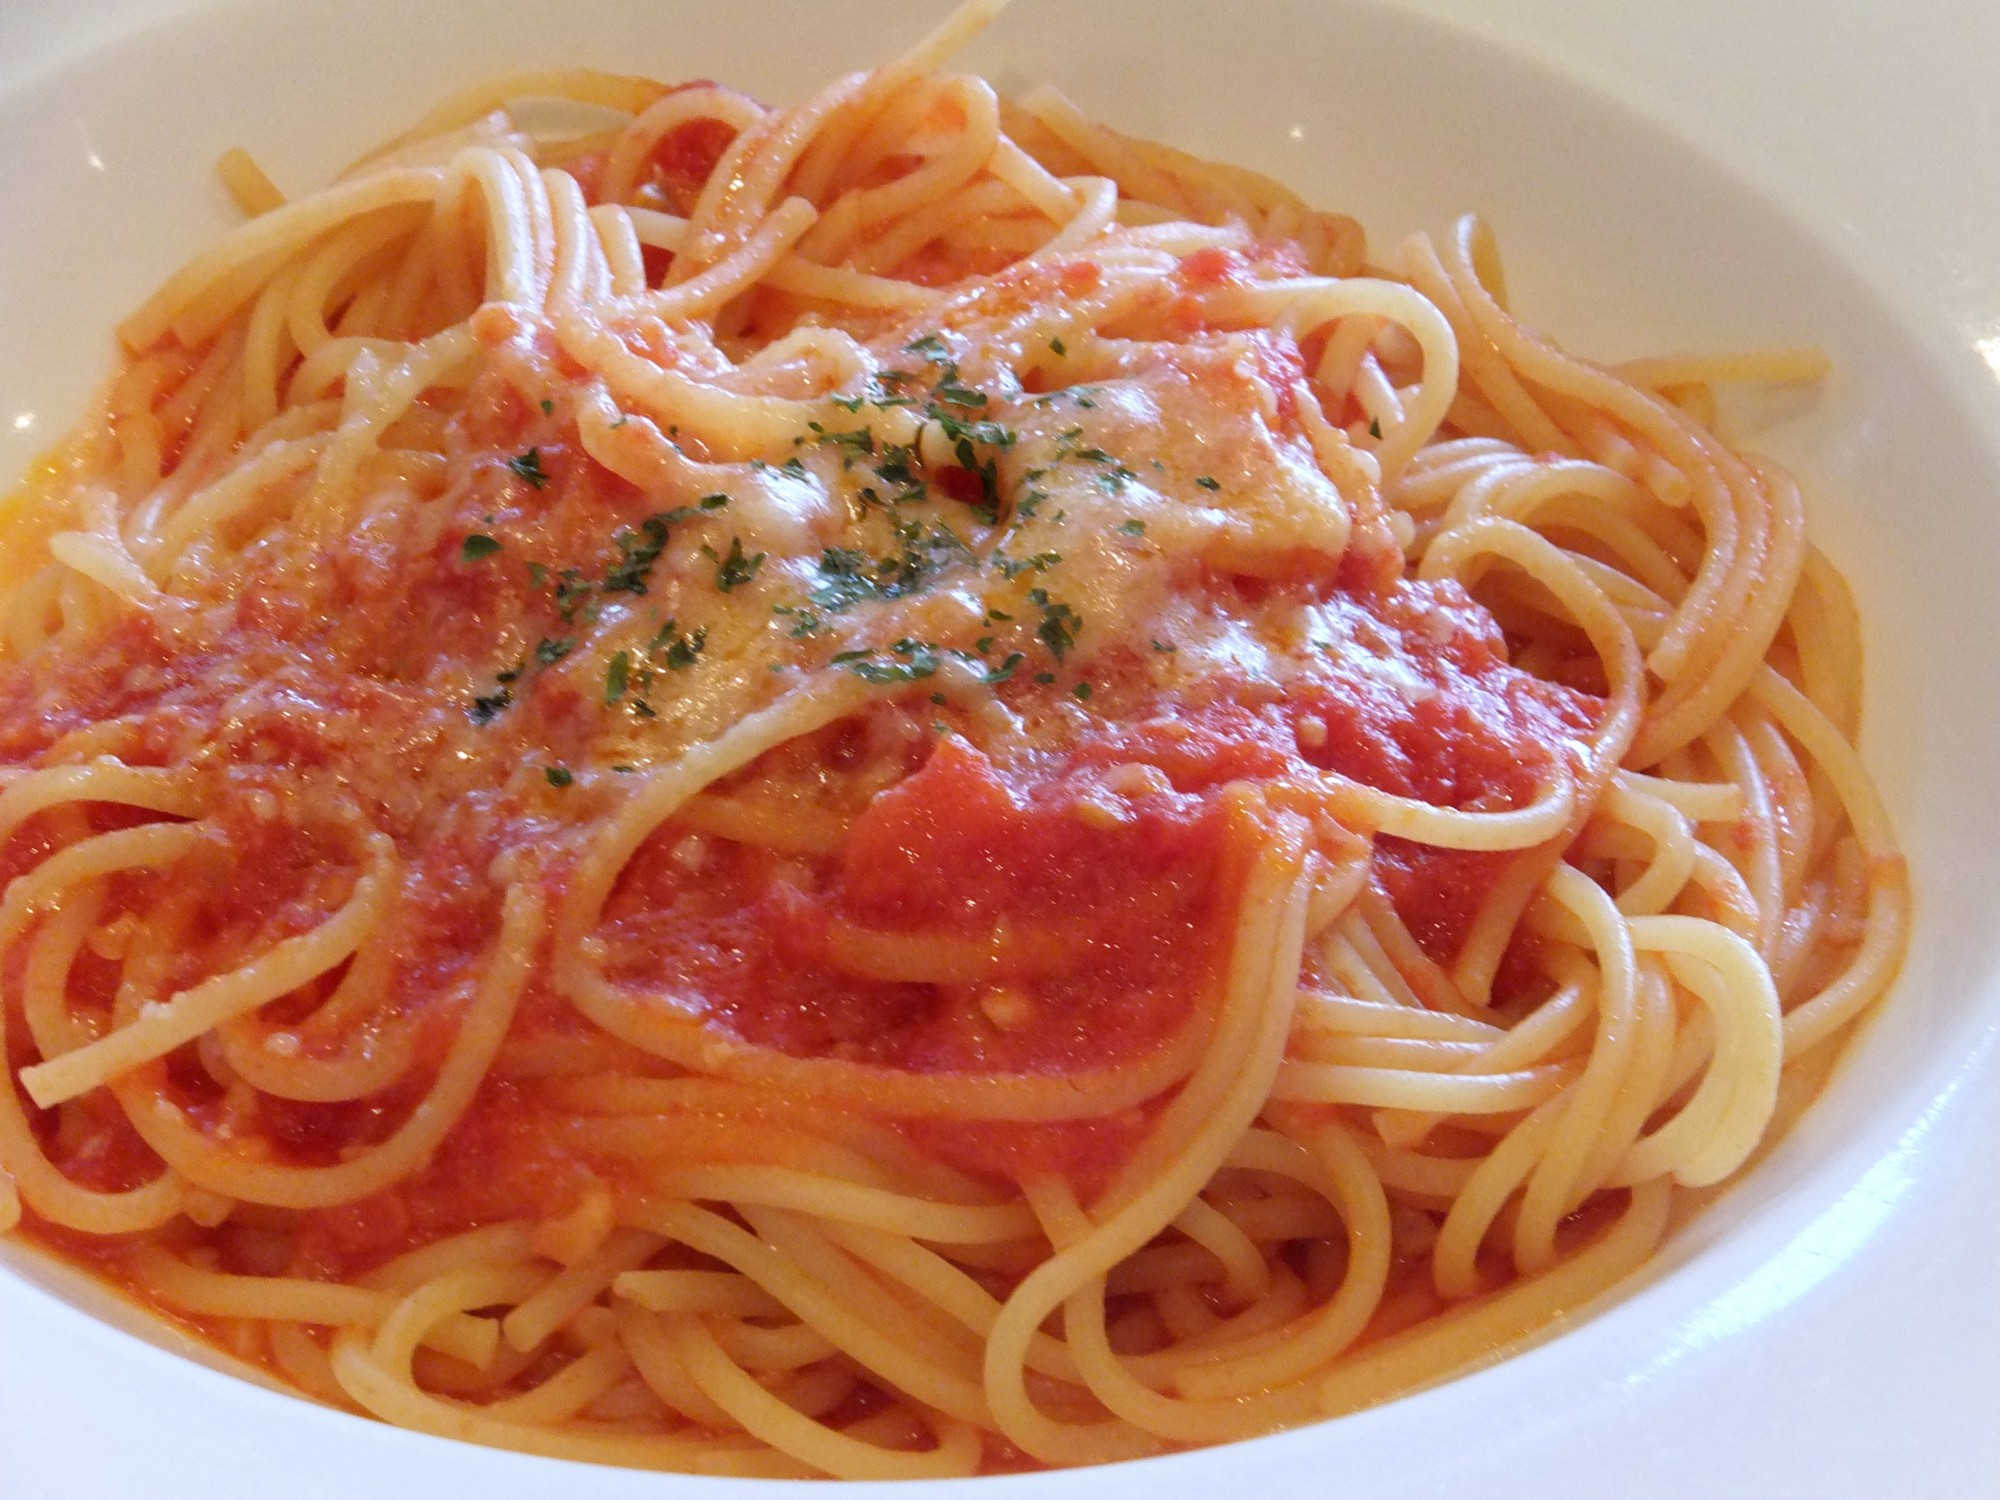 Tantalizing and simple plate of spaghetti and red sauce